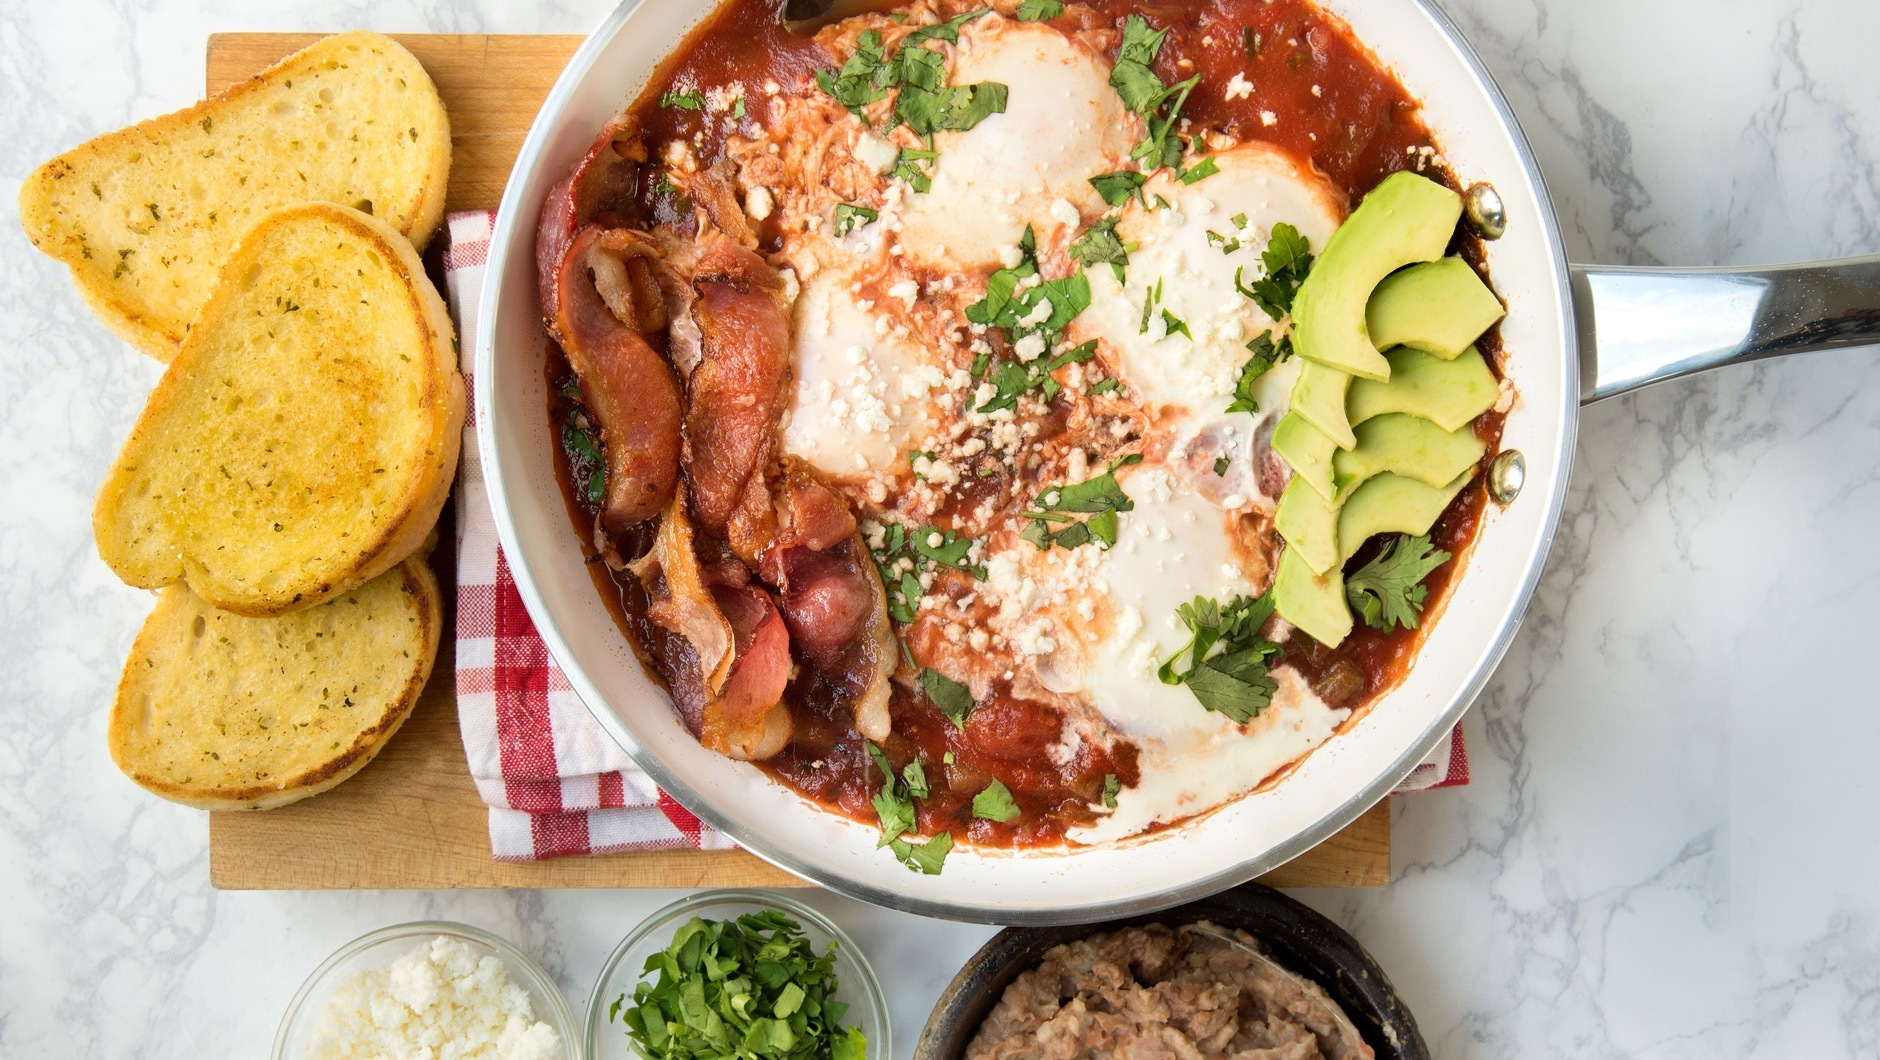 Huevos Rancheros With Bacon And Pinto Beans What S For Watermelon Wallpaper Rainbow Find Free HD for Desktop [freshlhys.tk]